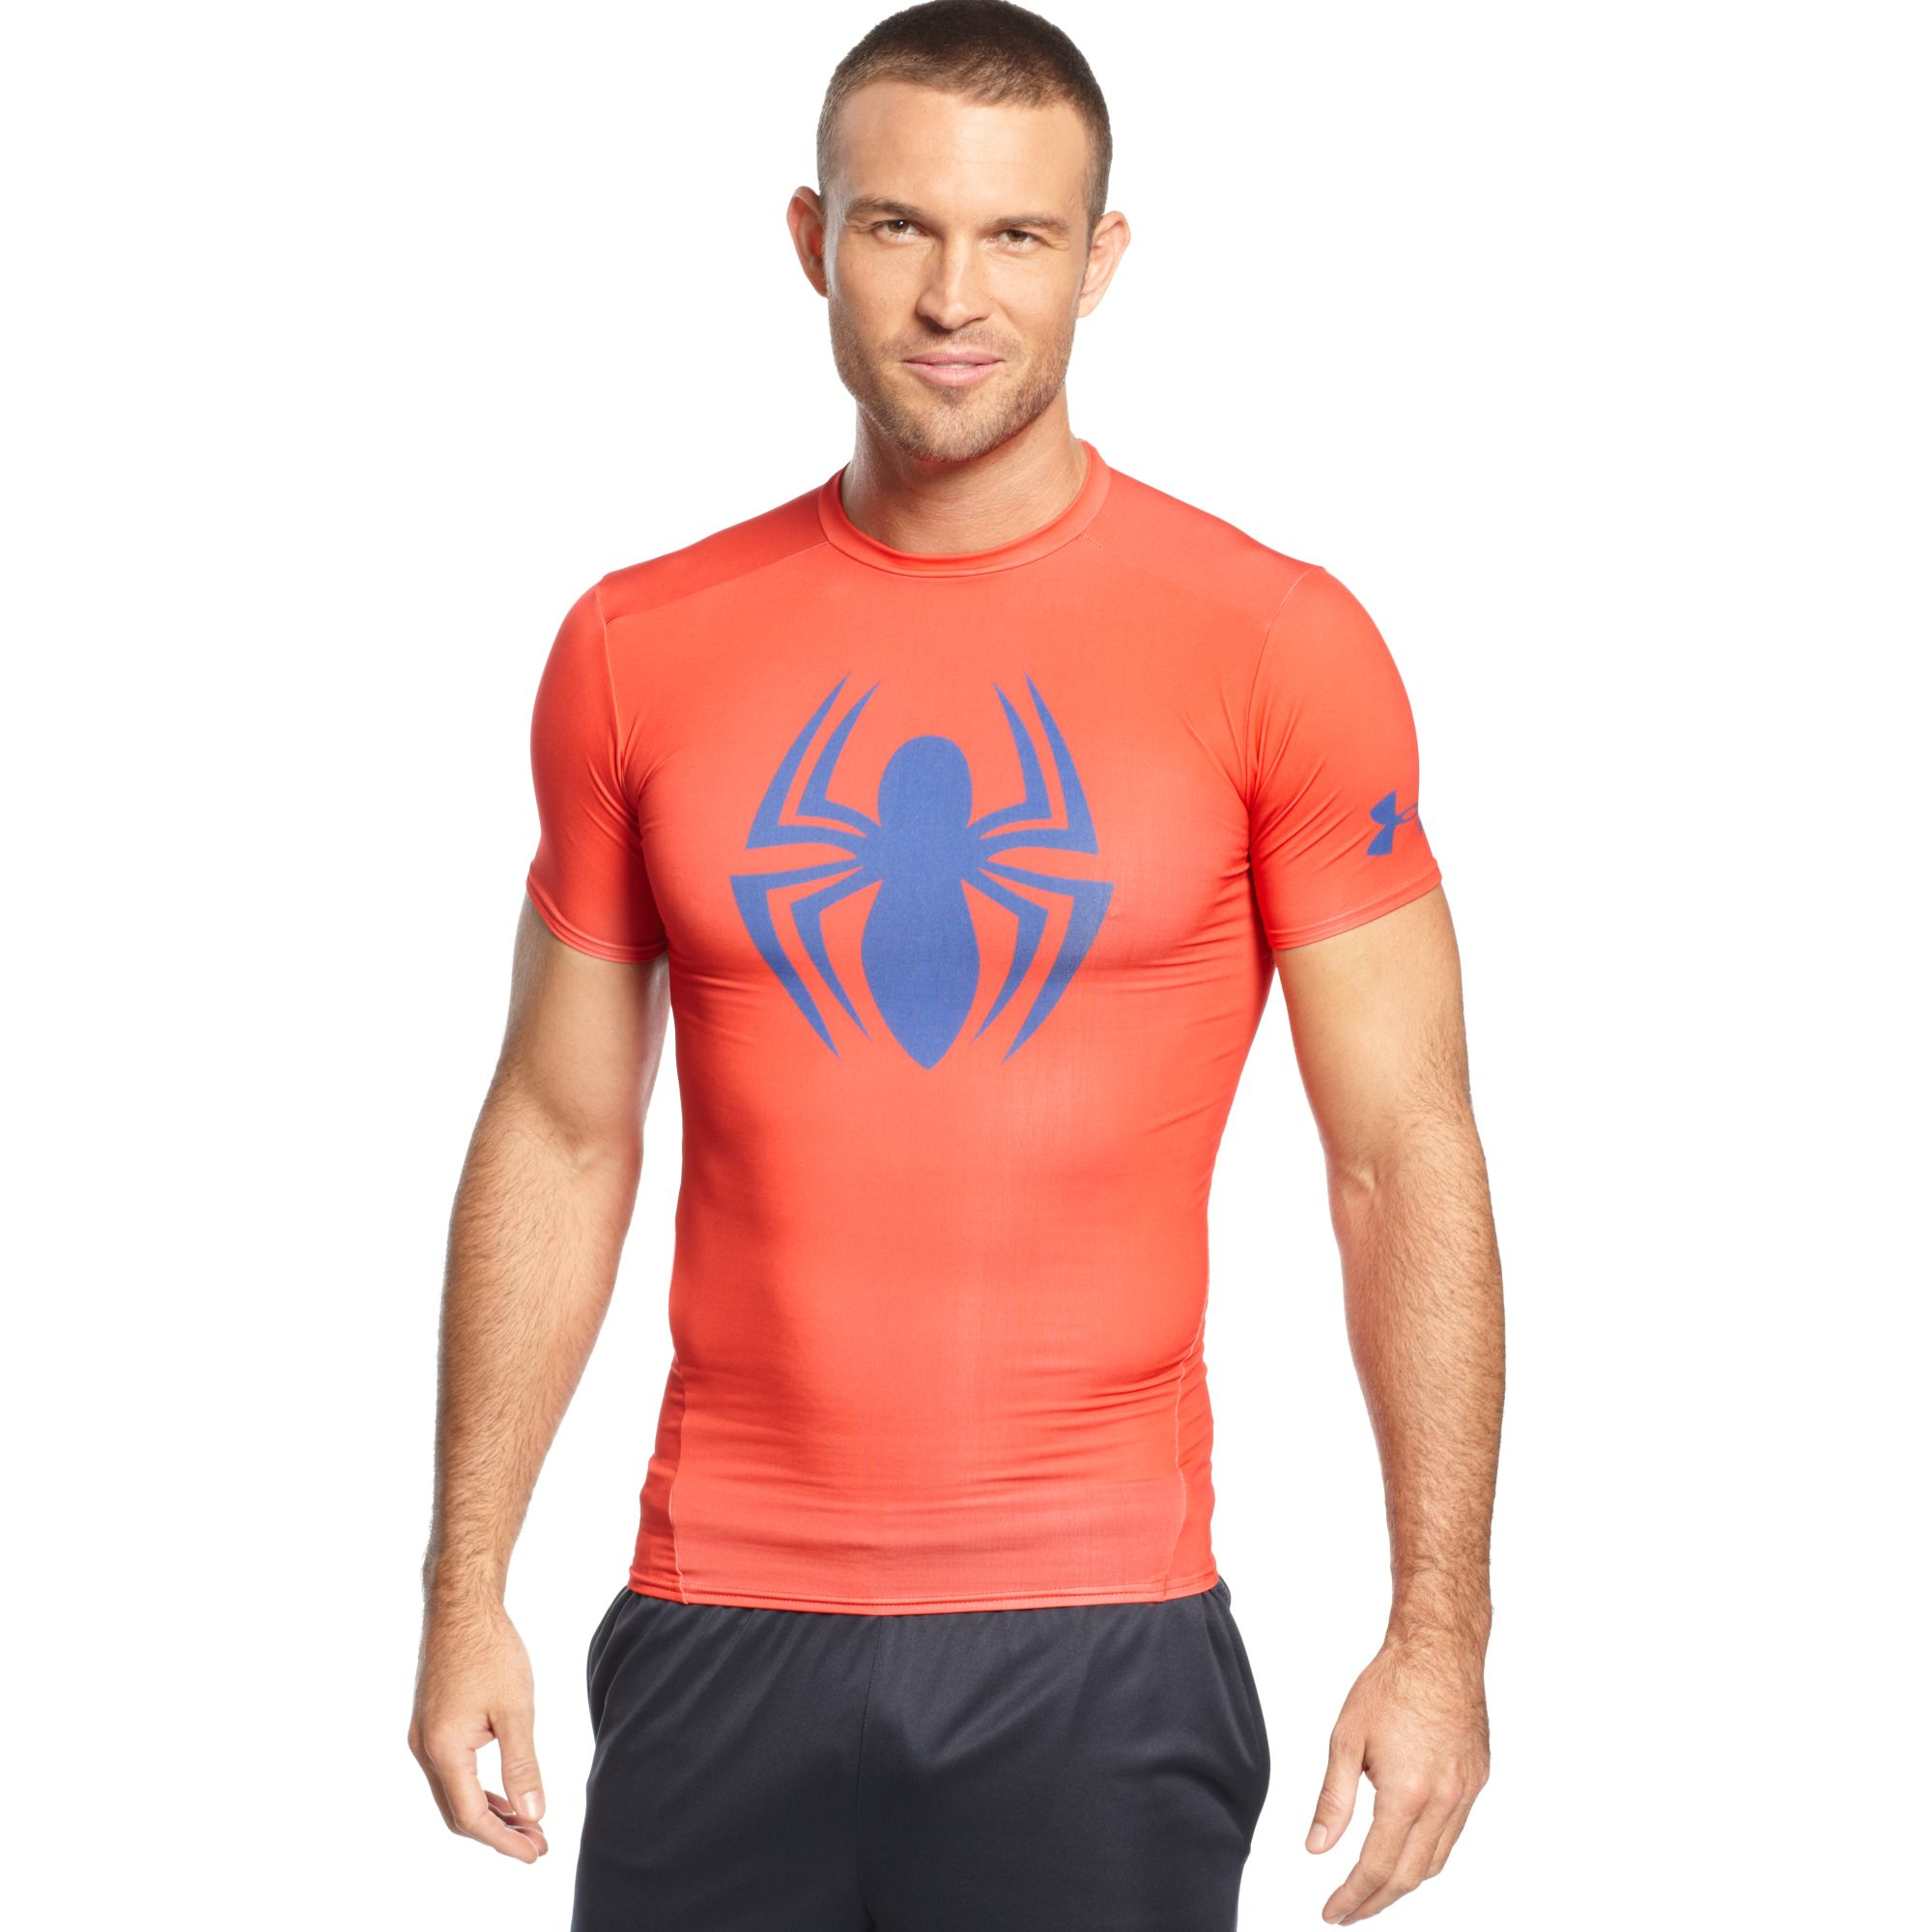 Under armour spiderman compression t shirt in red for men for Compression tee shirts for men